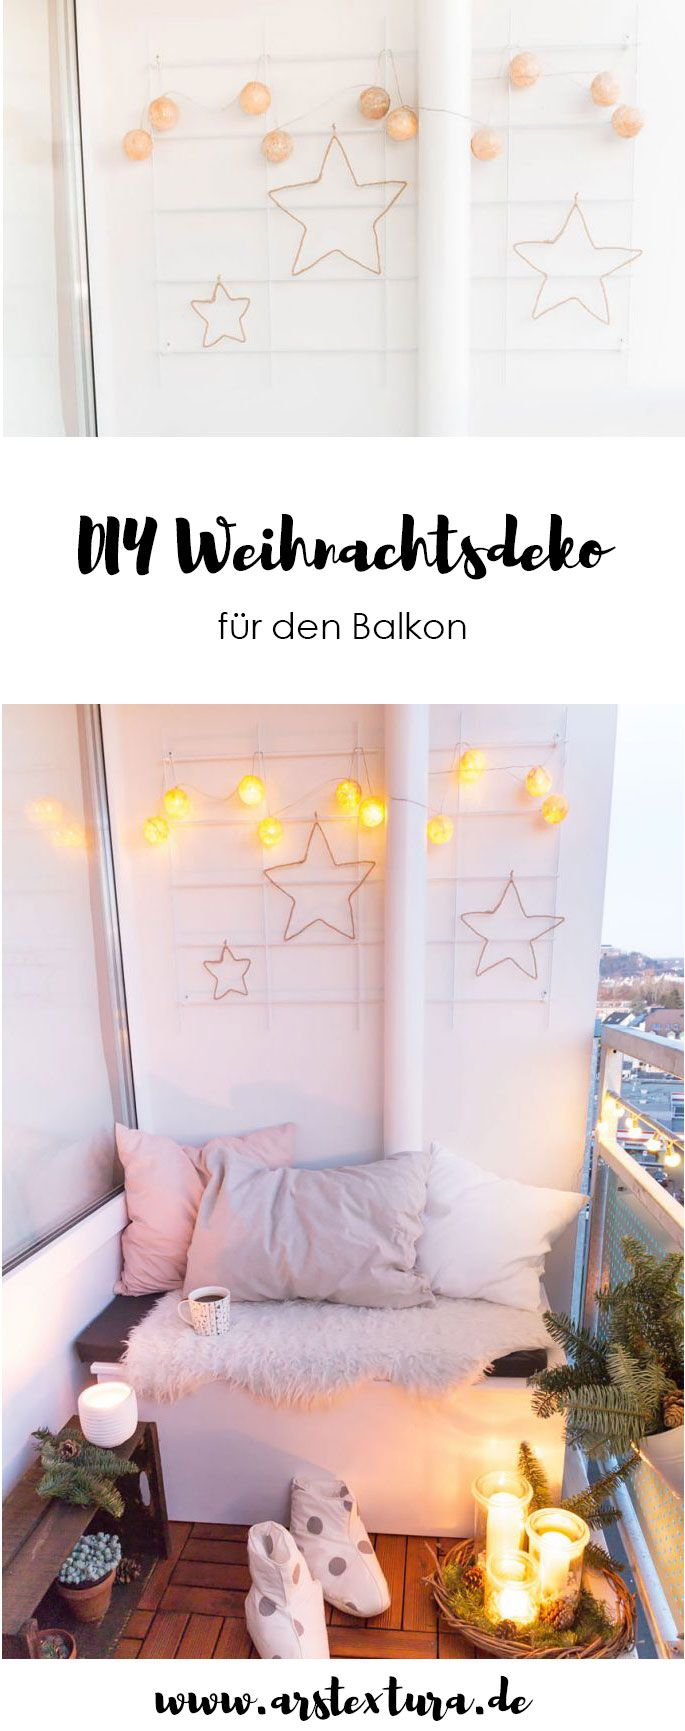 5 weihnachtsdeko f r den balkon weihnachten geschenkideen deko rezepte pinterest. Black Bedroom Furniture Sets. Home Design Ideas